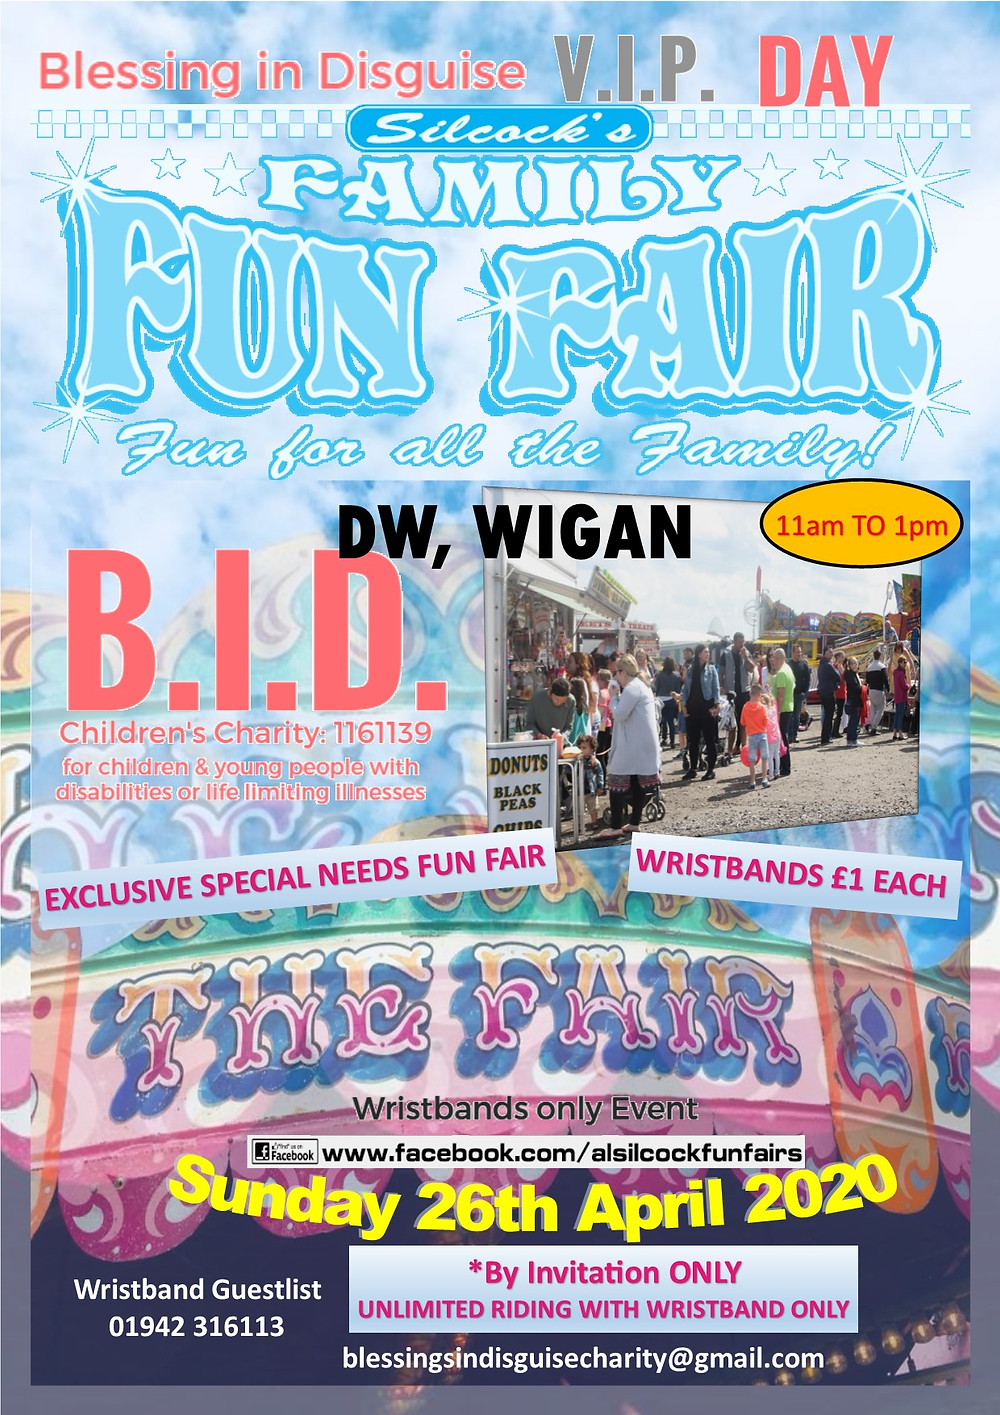 2020-04 26 - 26th April 2020 VIP Fun Fair, DW Wigan